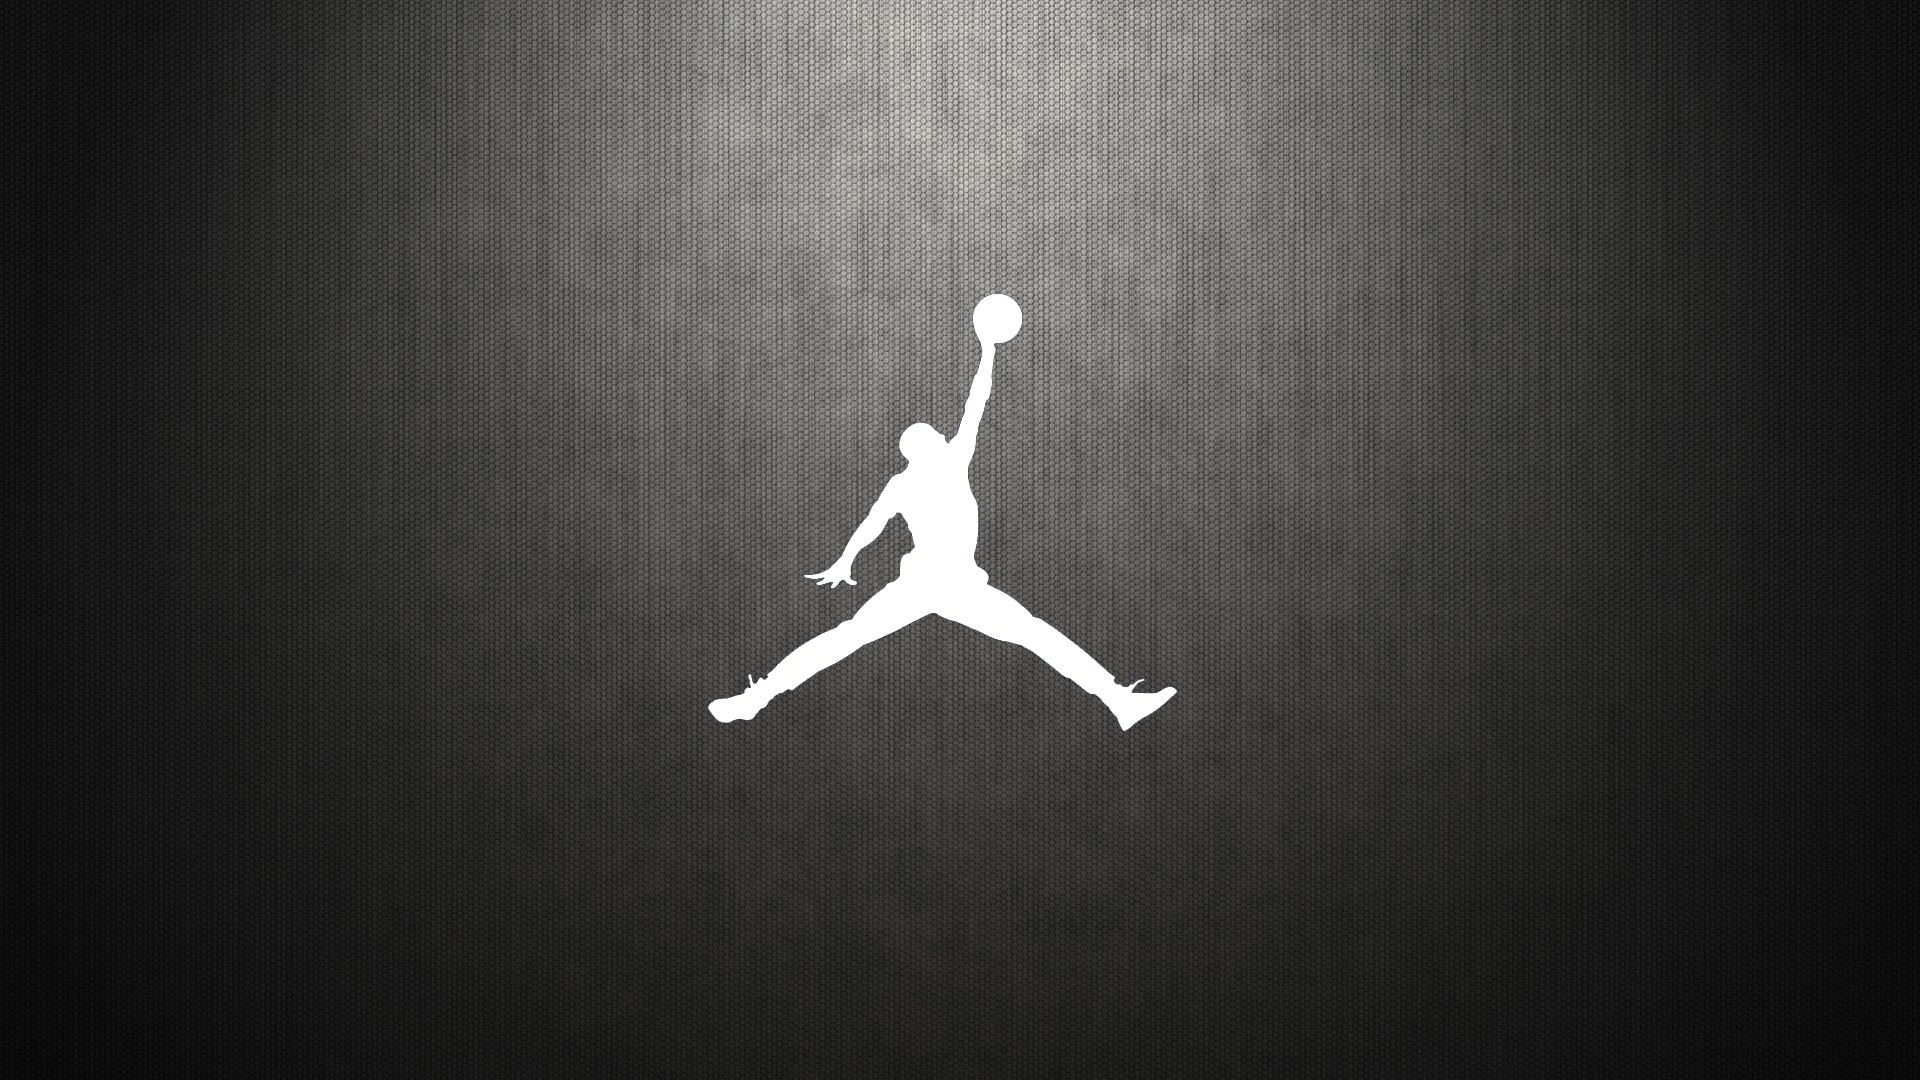 jordan logo wallpaper hd (68+ images)